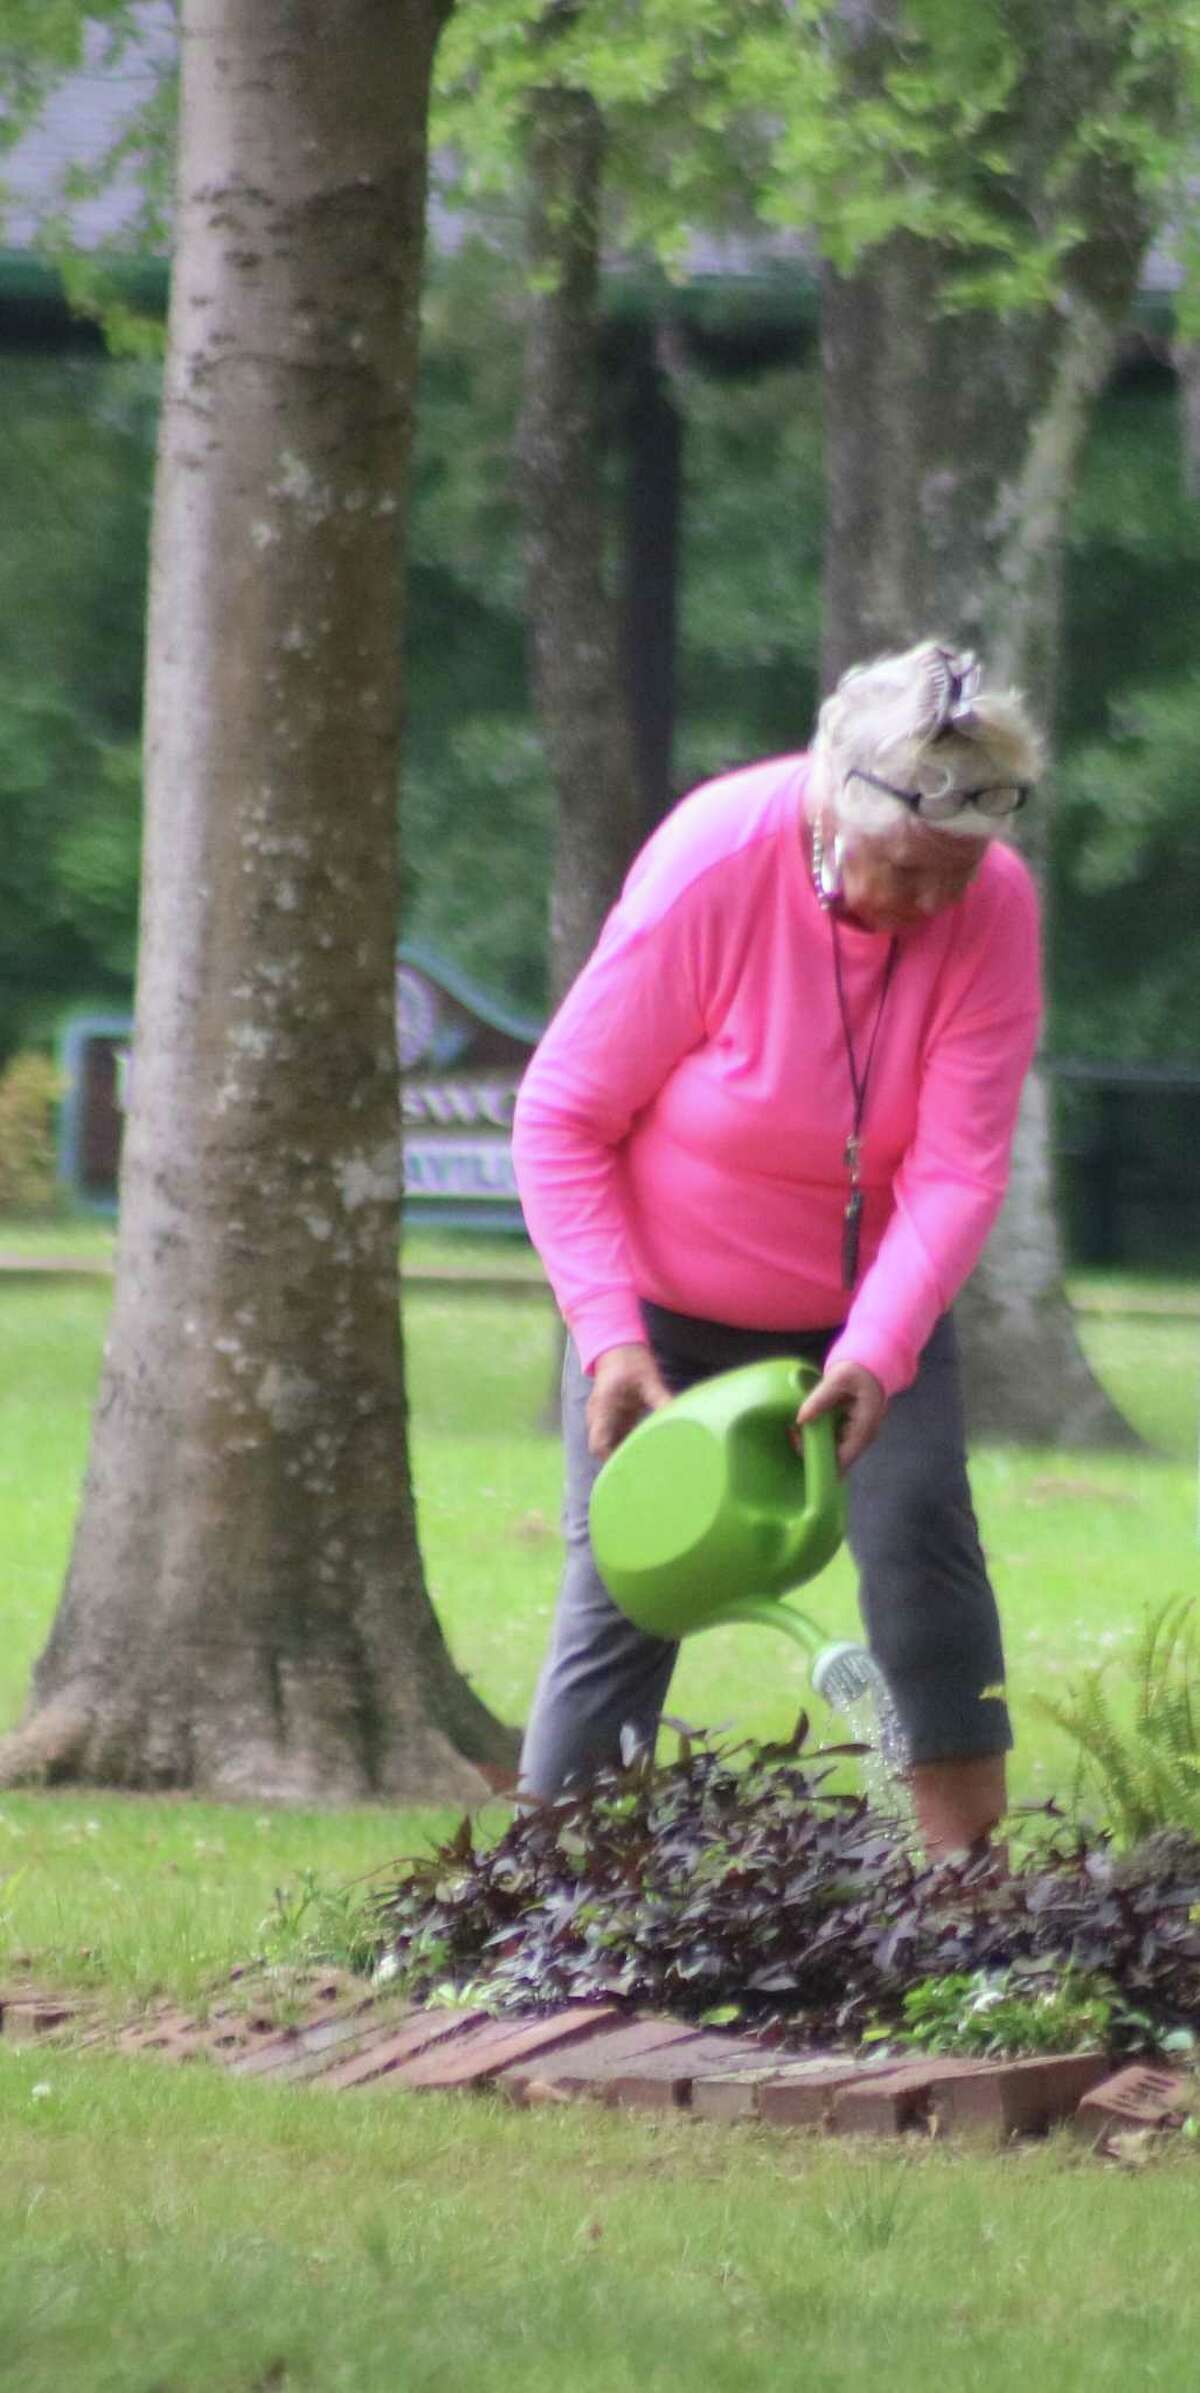 Plants of all variety in the park receive plenty of TLC from Wanda Murphy.